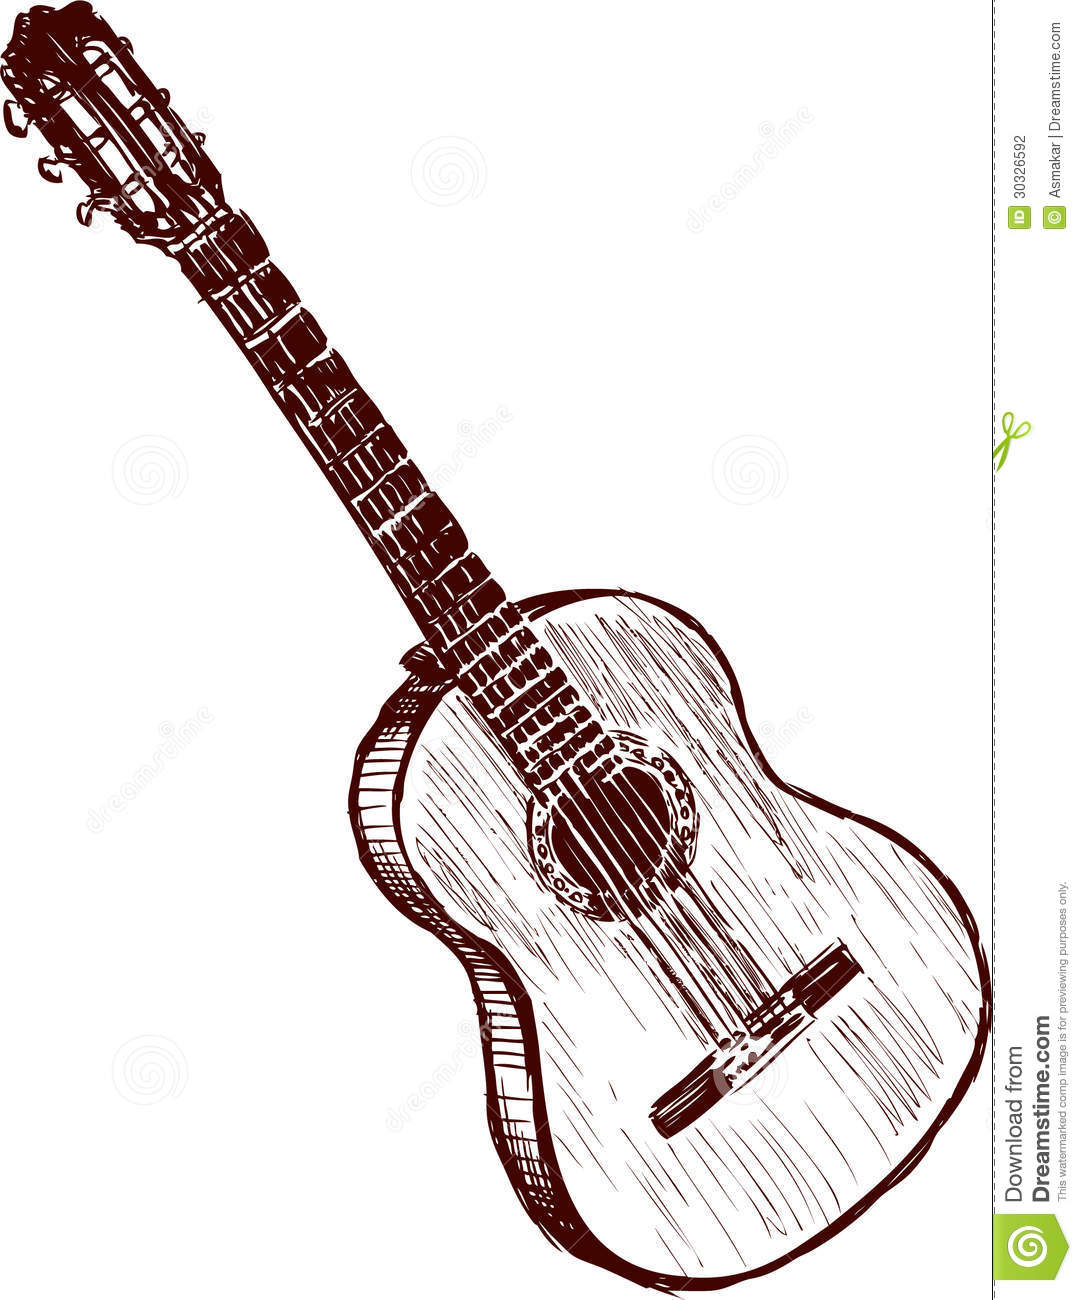 Old guitar stock vector  Illustration of steel, rock - 30326592